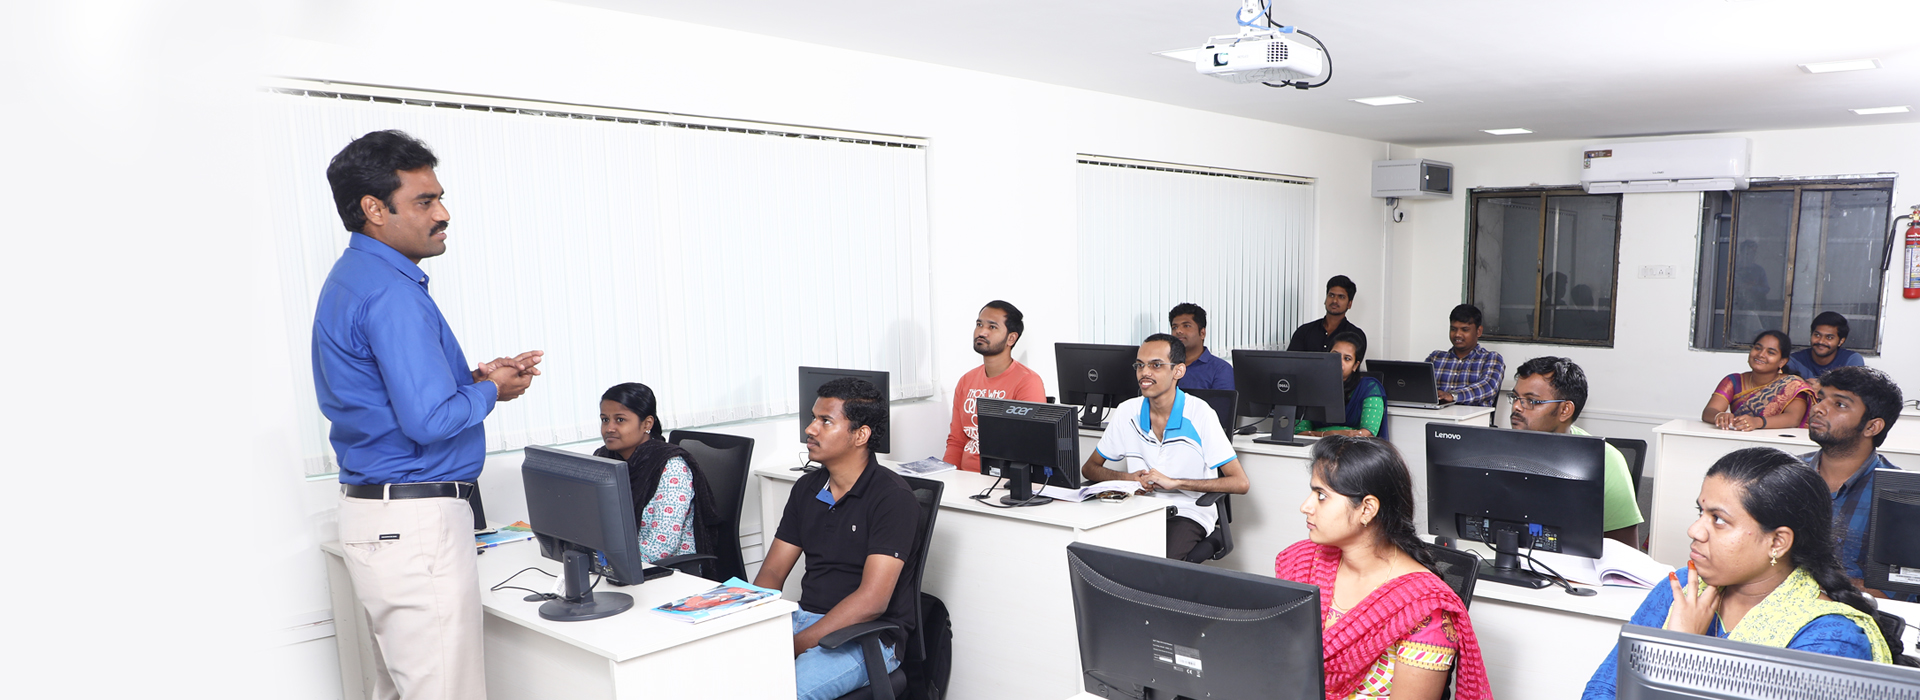 Ampere VLSI Training Center in Bangalore